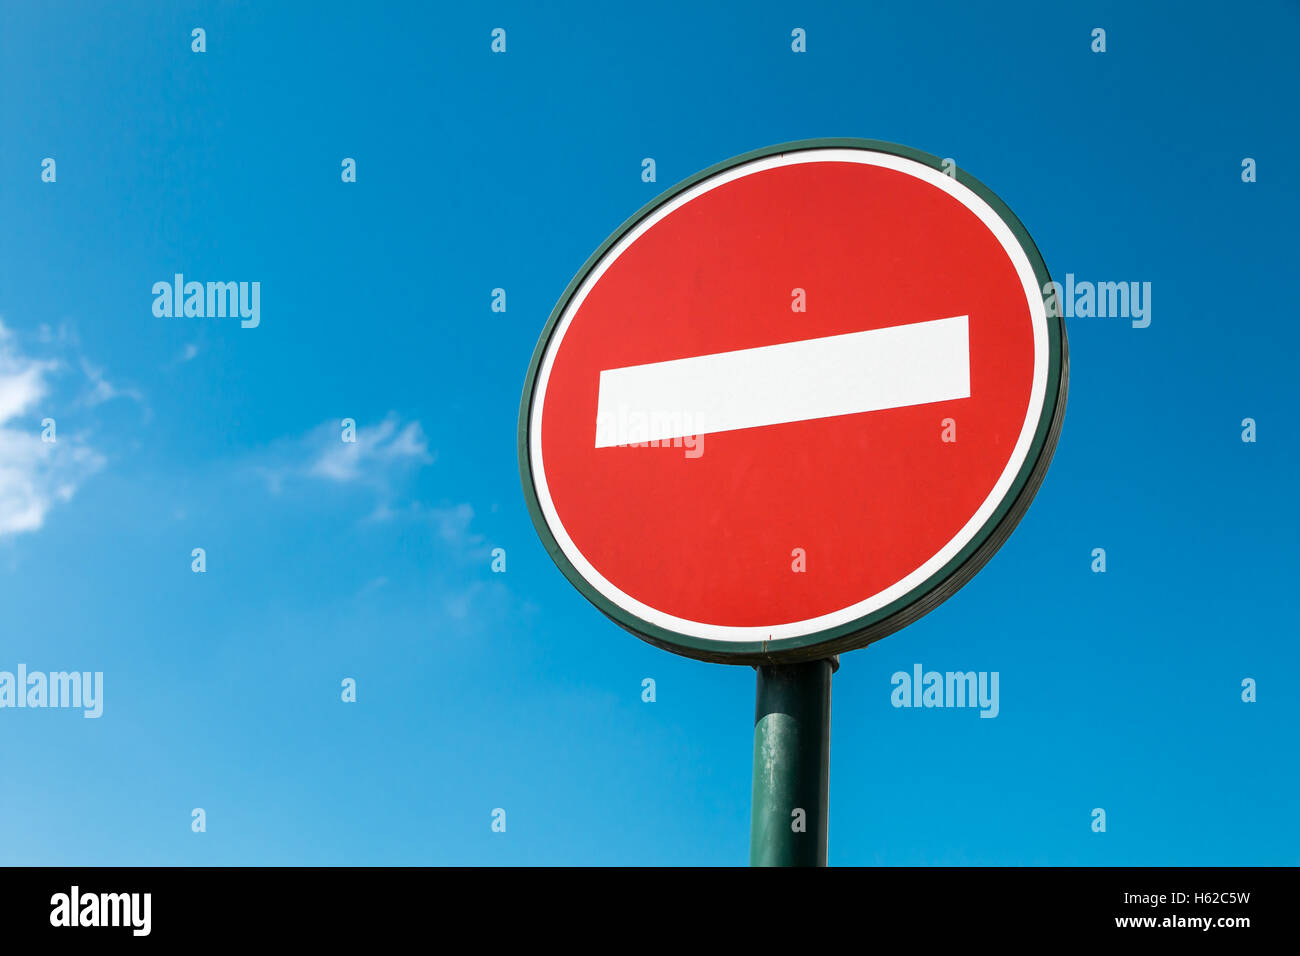 No entry sign in a a parking with blue sky - Stock Image